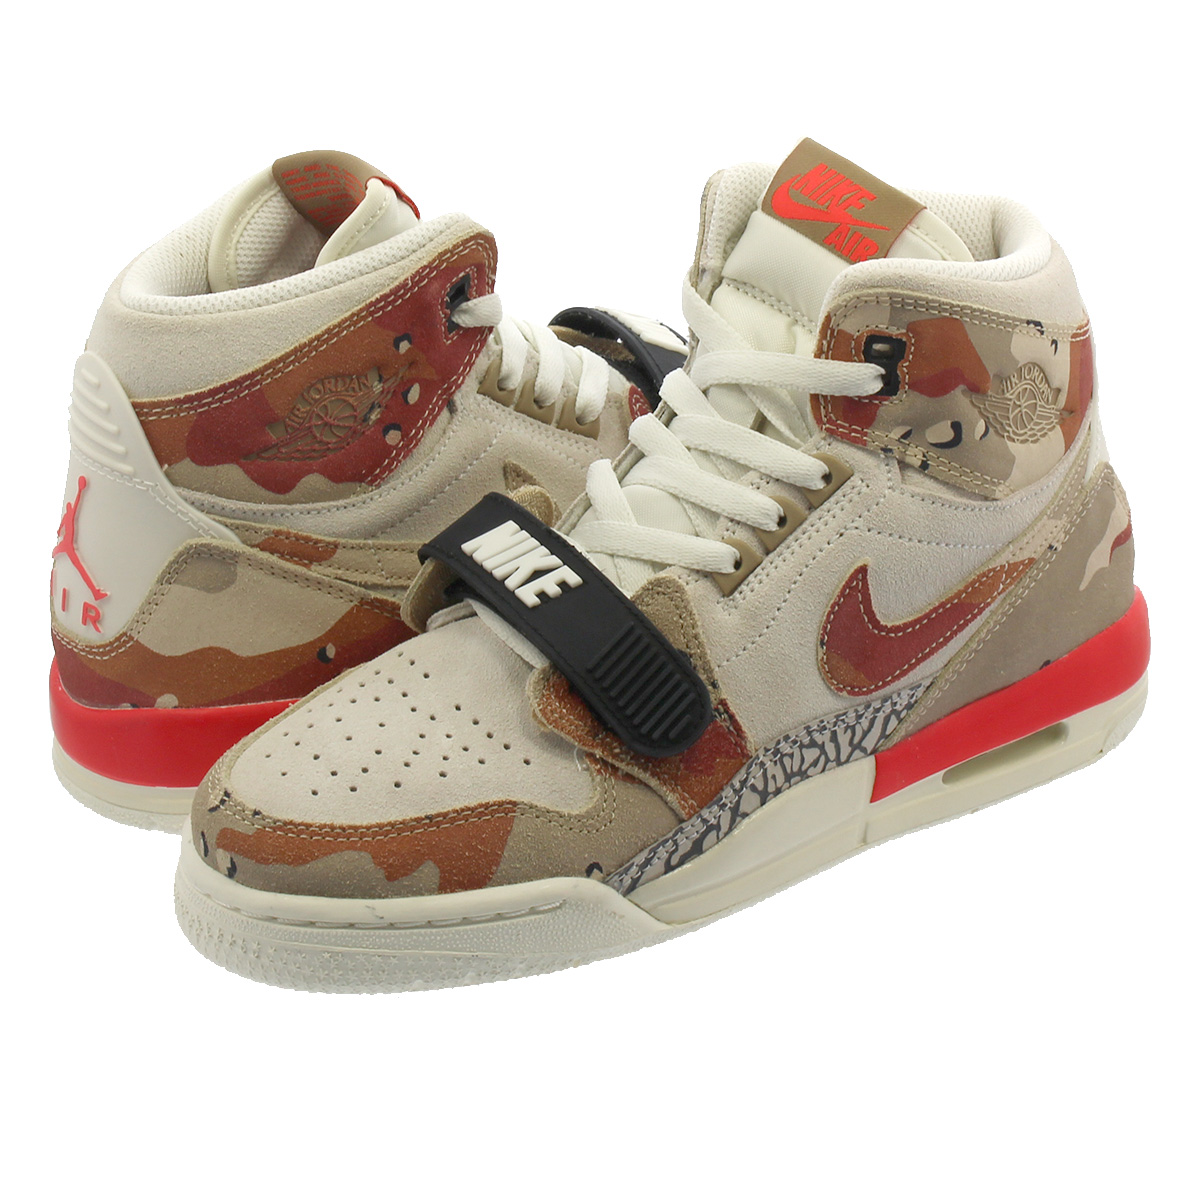 42aa9b96 SELECT SHOP LOWTEX: NIKE AIR JORDAN LEGACY 312 GS Nike Air Jordan Legacy 312  GS SAIL/DESERT CAMO/INFRARED 23 at4040-126 | Rakuten Global Market